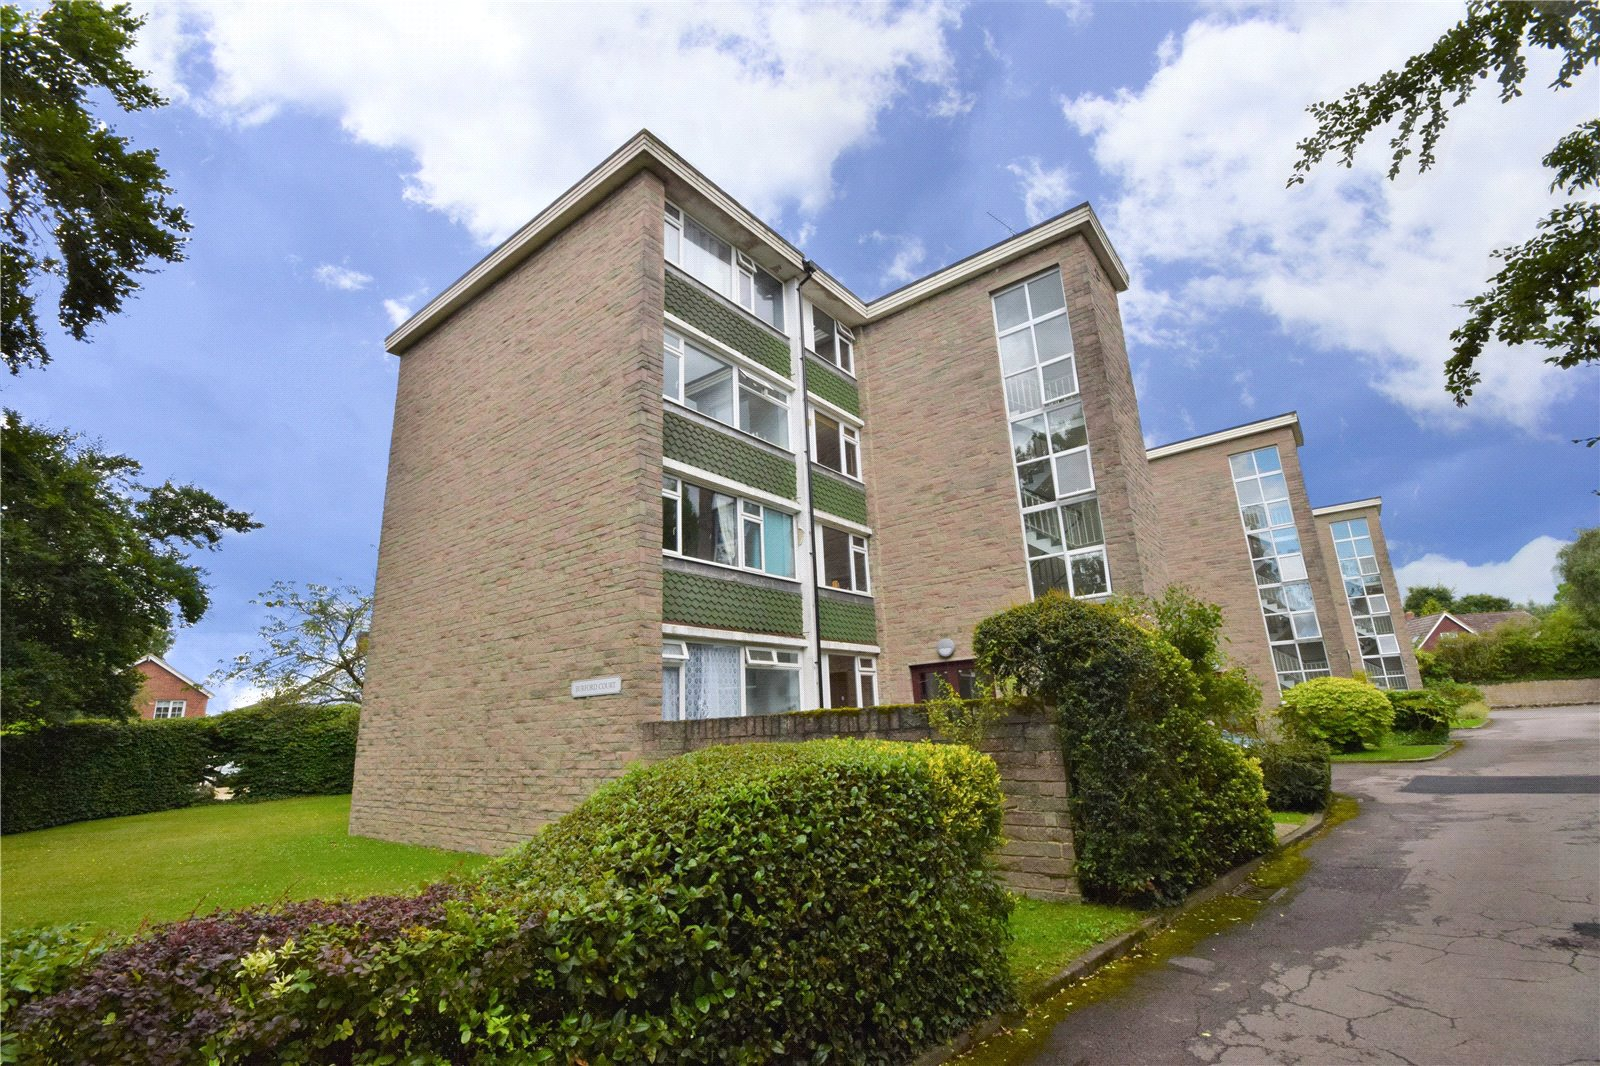 2 Bedrooms Apartment Flat for sale in Burford Court, Rances Lane, Wokingham, Berkshire, RG40